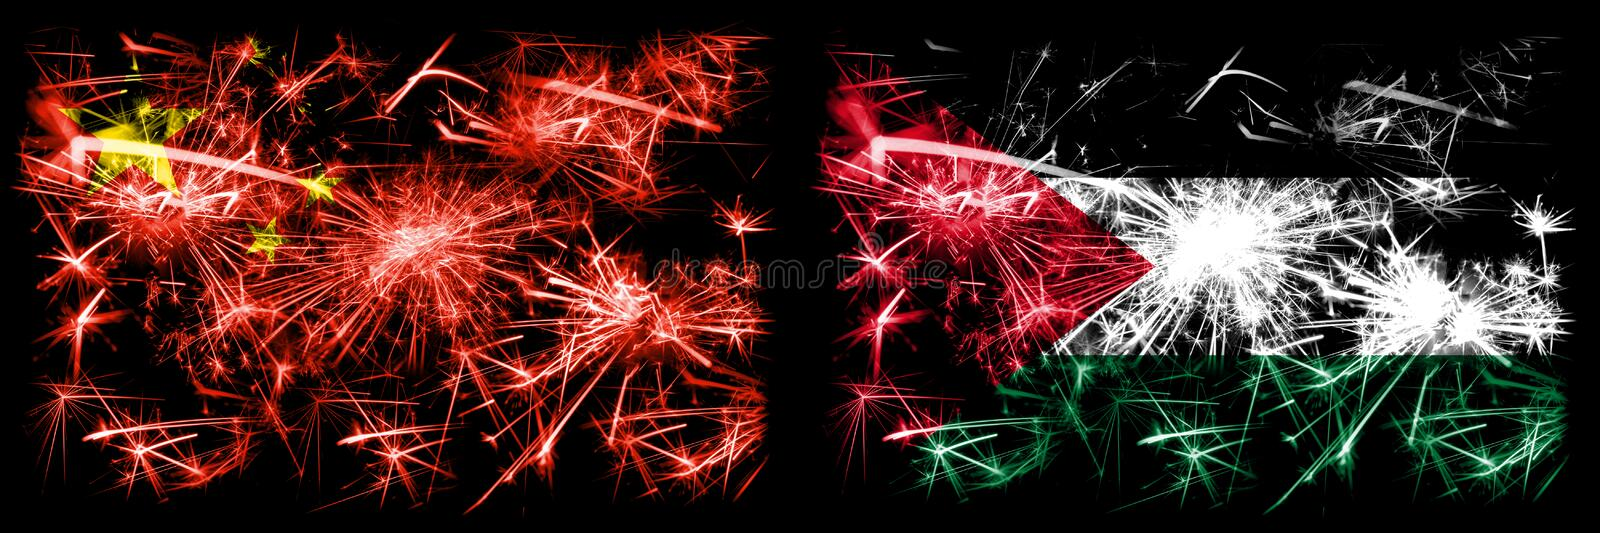 China, Chinese vs Palestine, Palestinian New Year celebration travel sparkling fireworks flags concept background. Combination of. Two abstract states flags royalty free stock photography